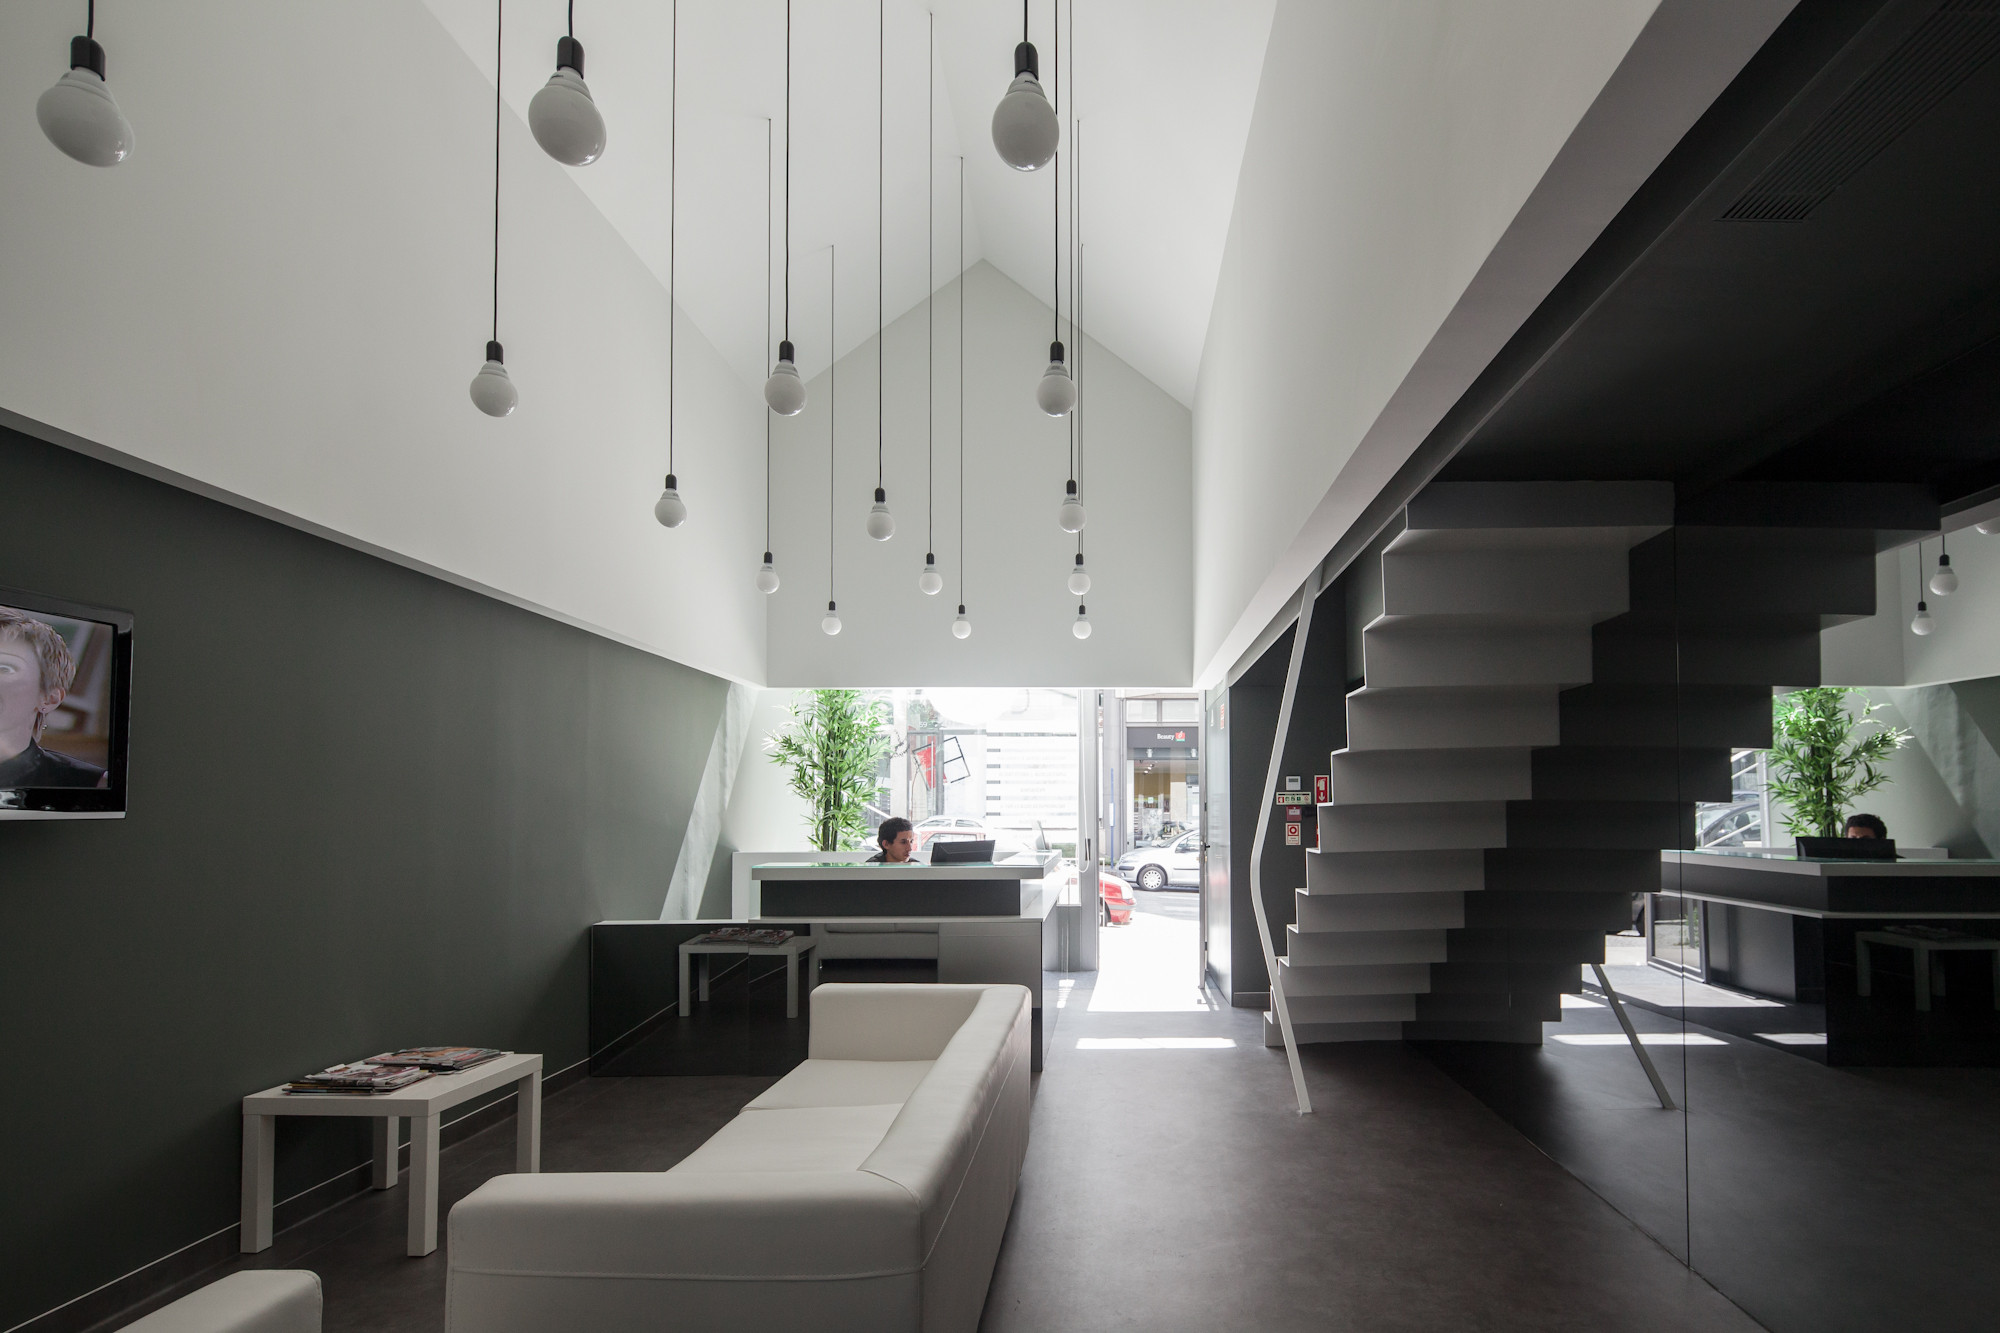 Gallery of dental clinic in oporto paulo merlini 10 for Dental clinic interior designs